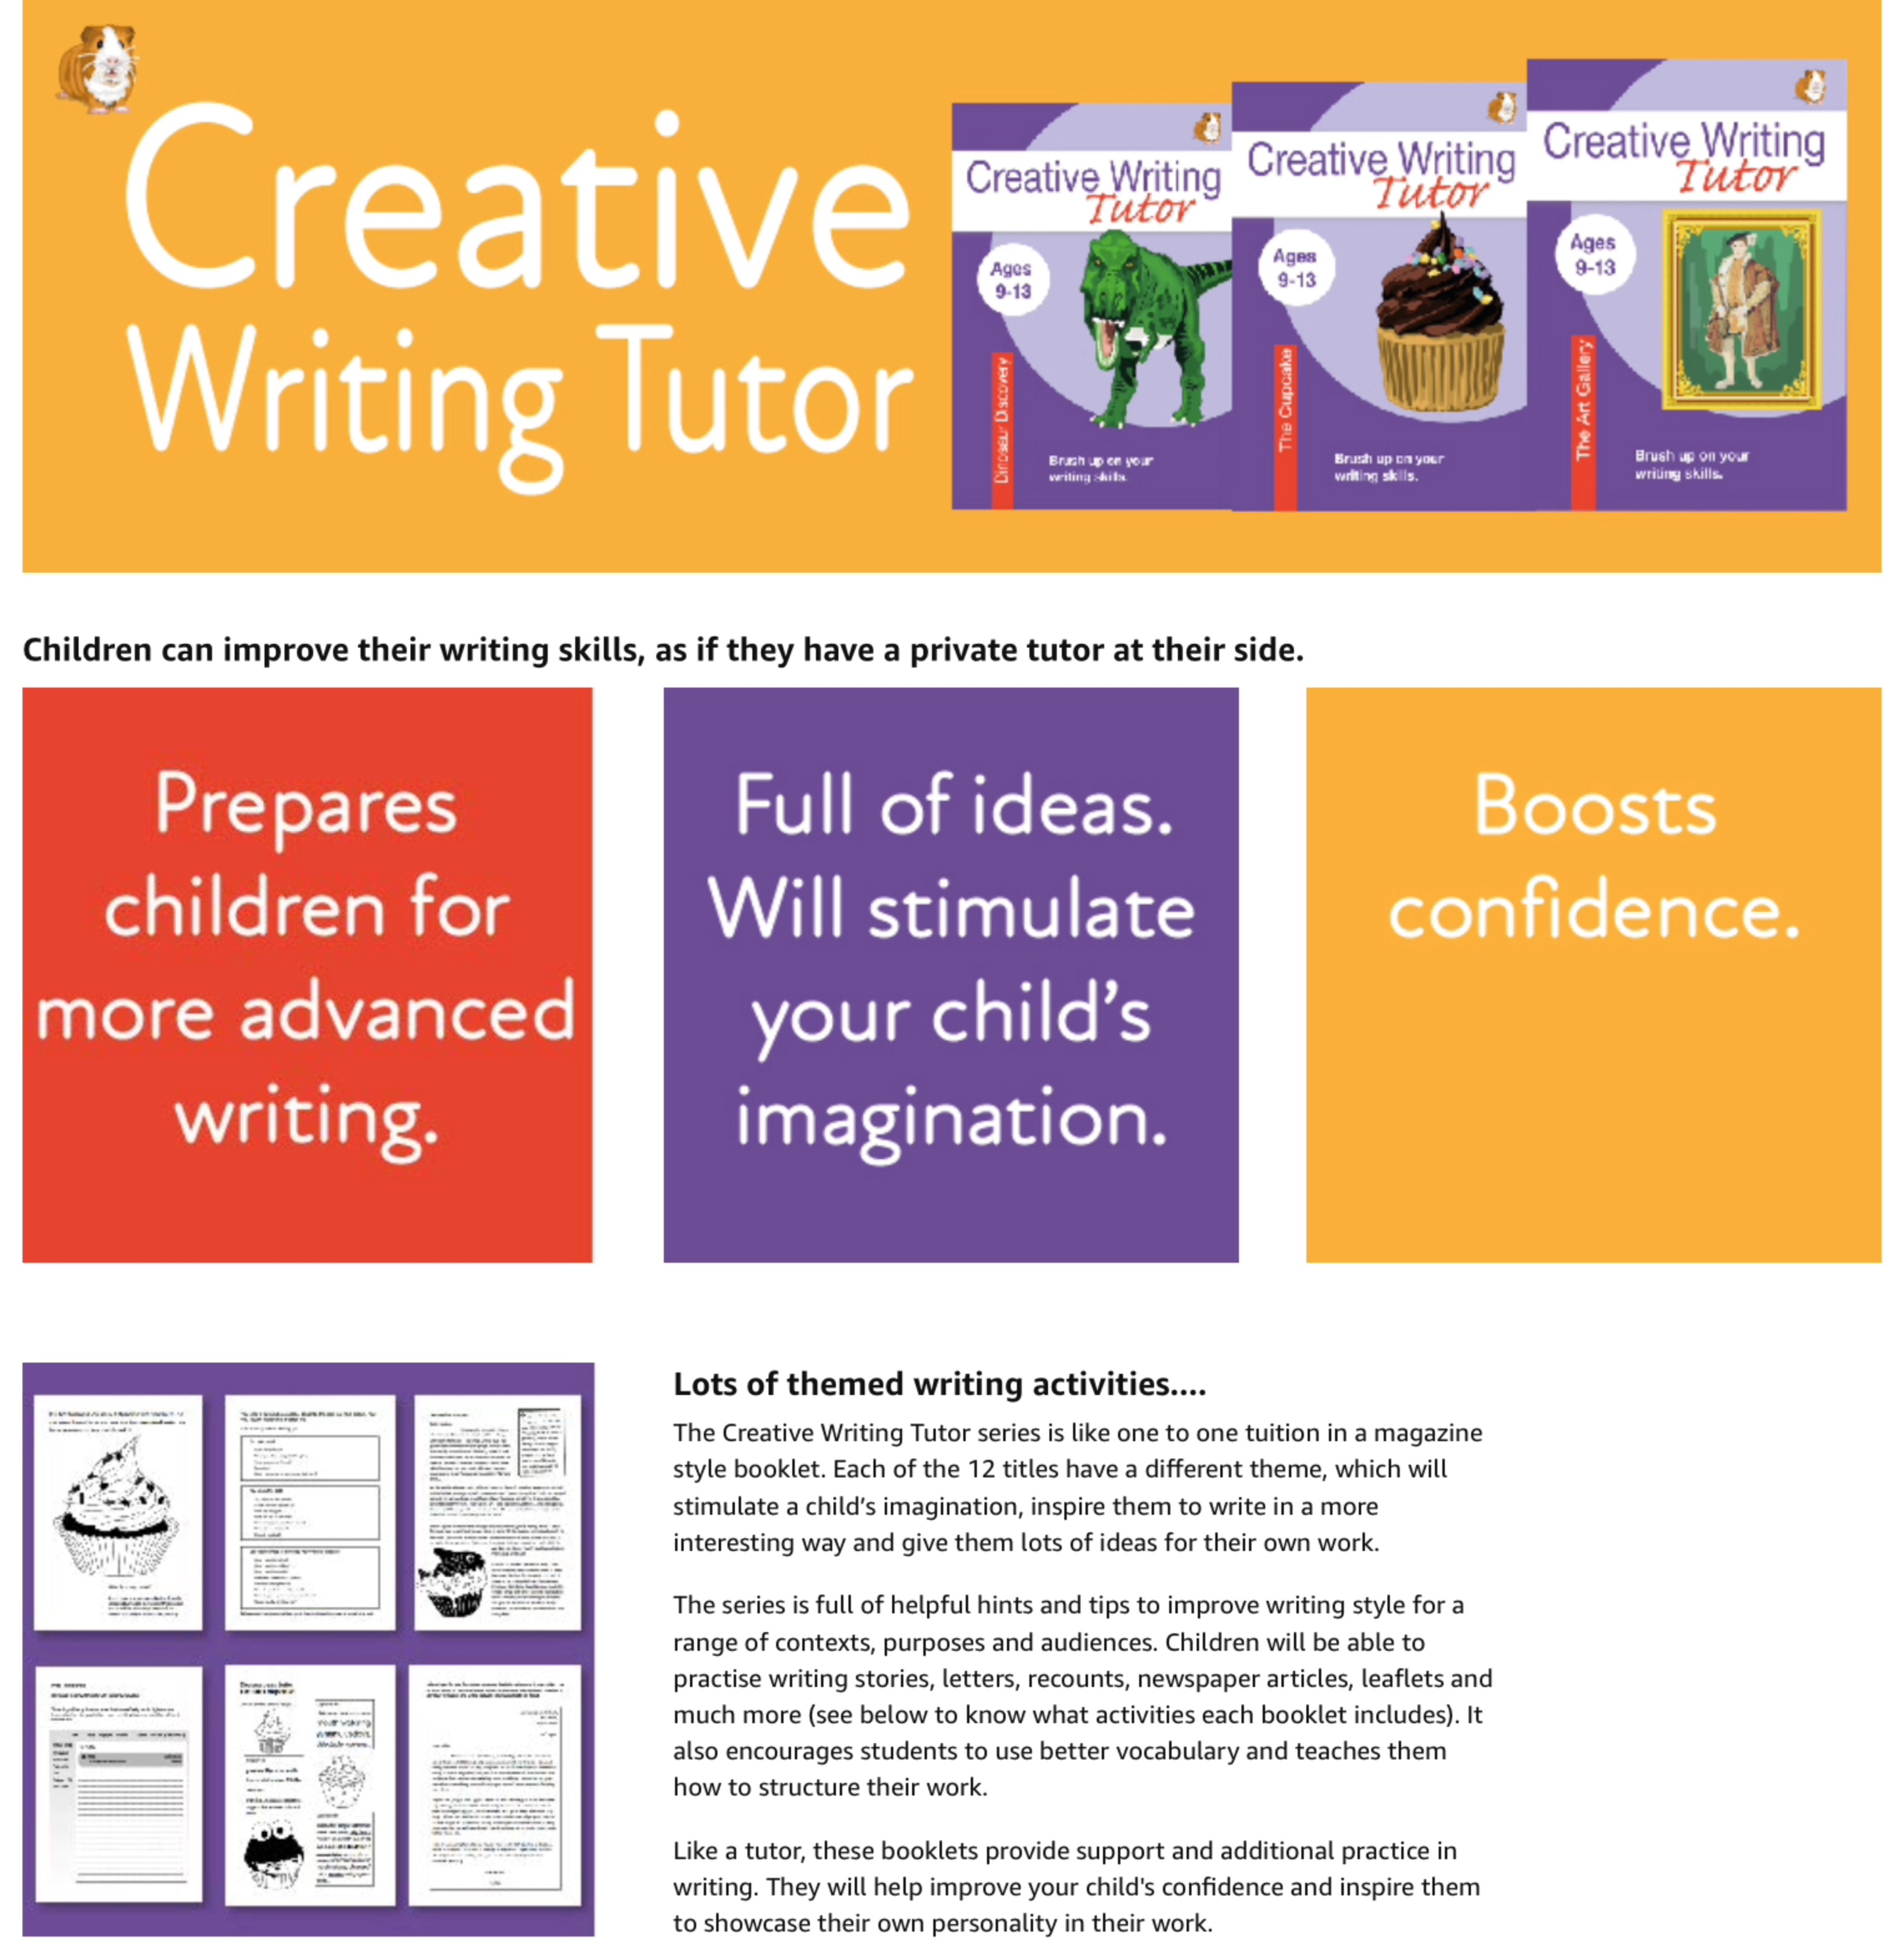 The Space Age Bag: Brush Up On Your Writing Skills (Creative Writing Tutor) (ages 9-13 years)